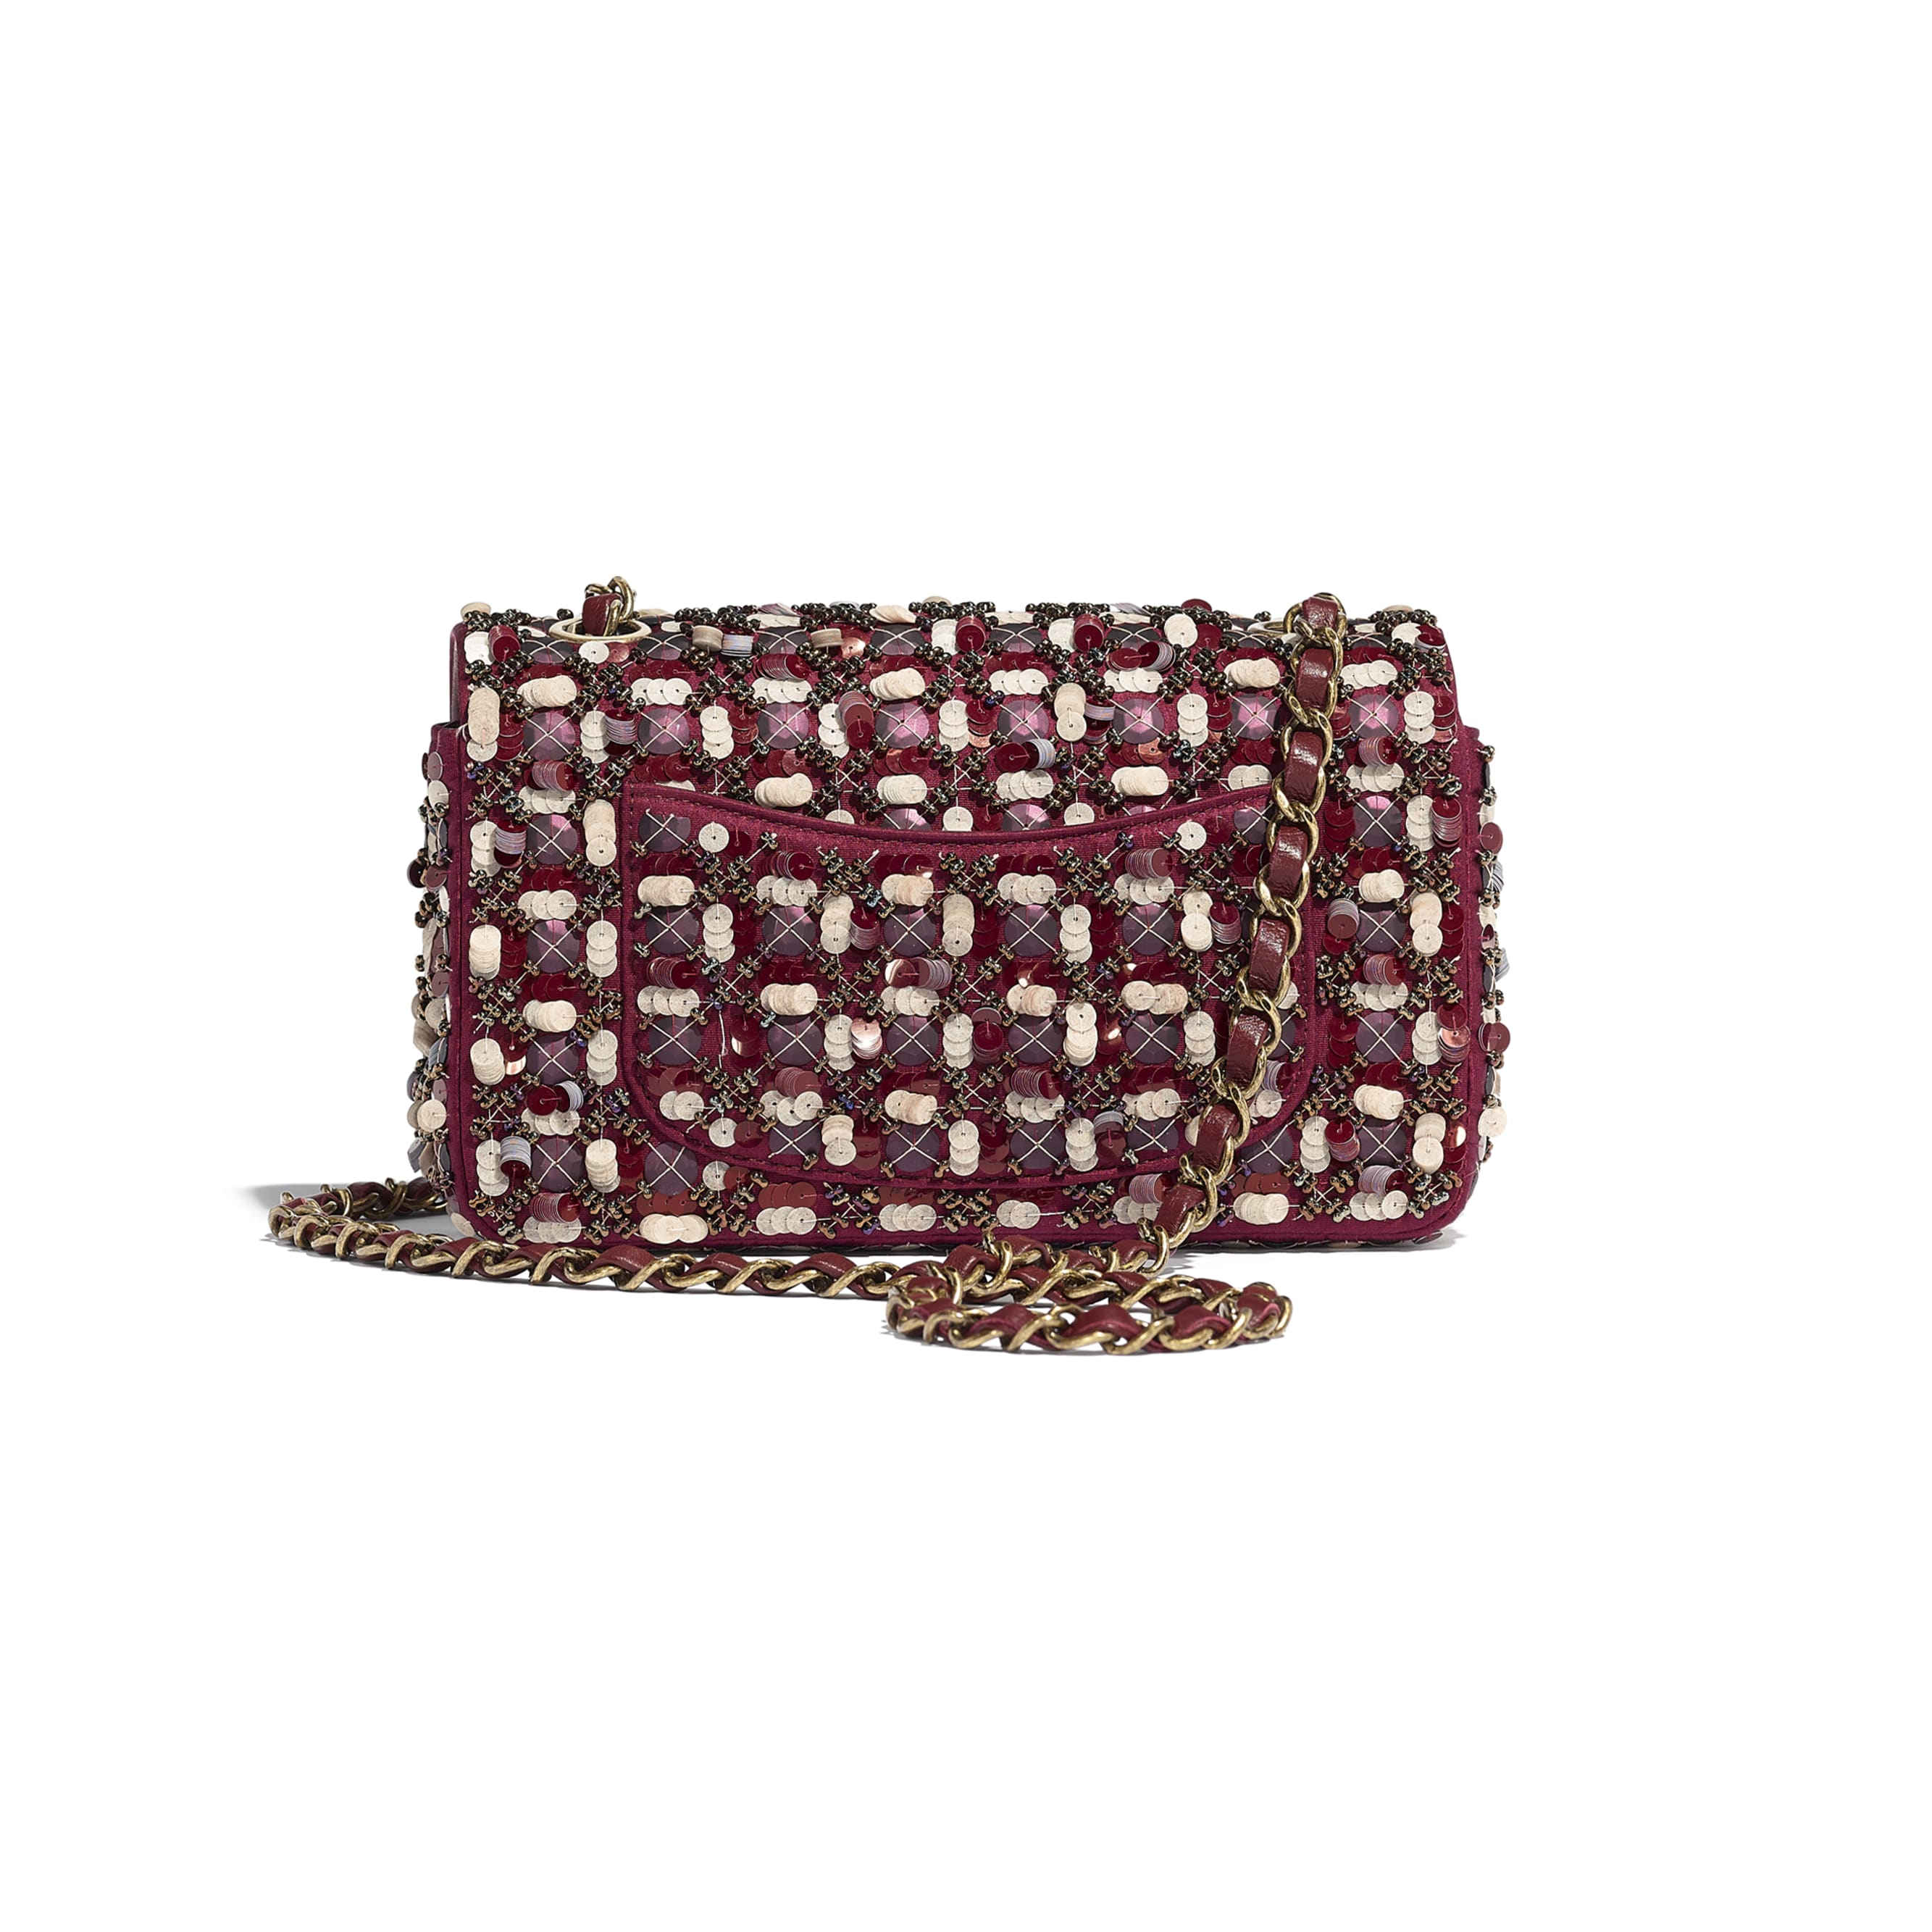 Mini Flap Bag - Burgundy, Pink & White - Satin, Sequins, Glass Pearls & Gold-Tone Metal - CHANEL - Alternative view - see standard sized version